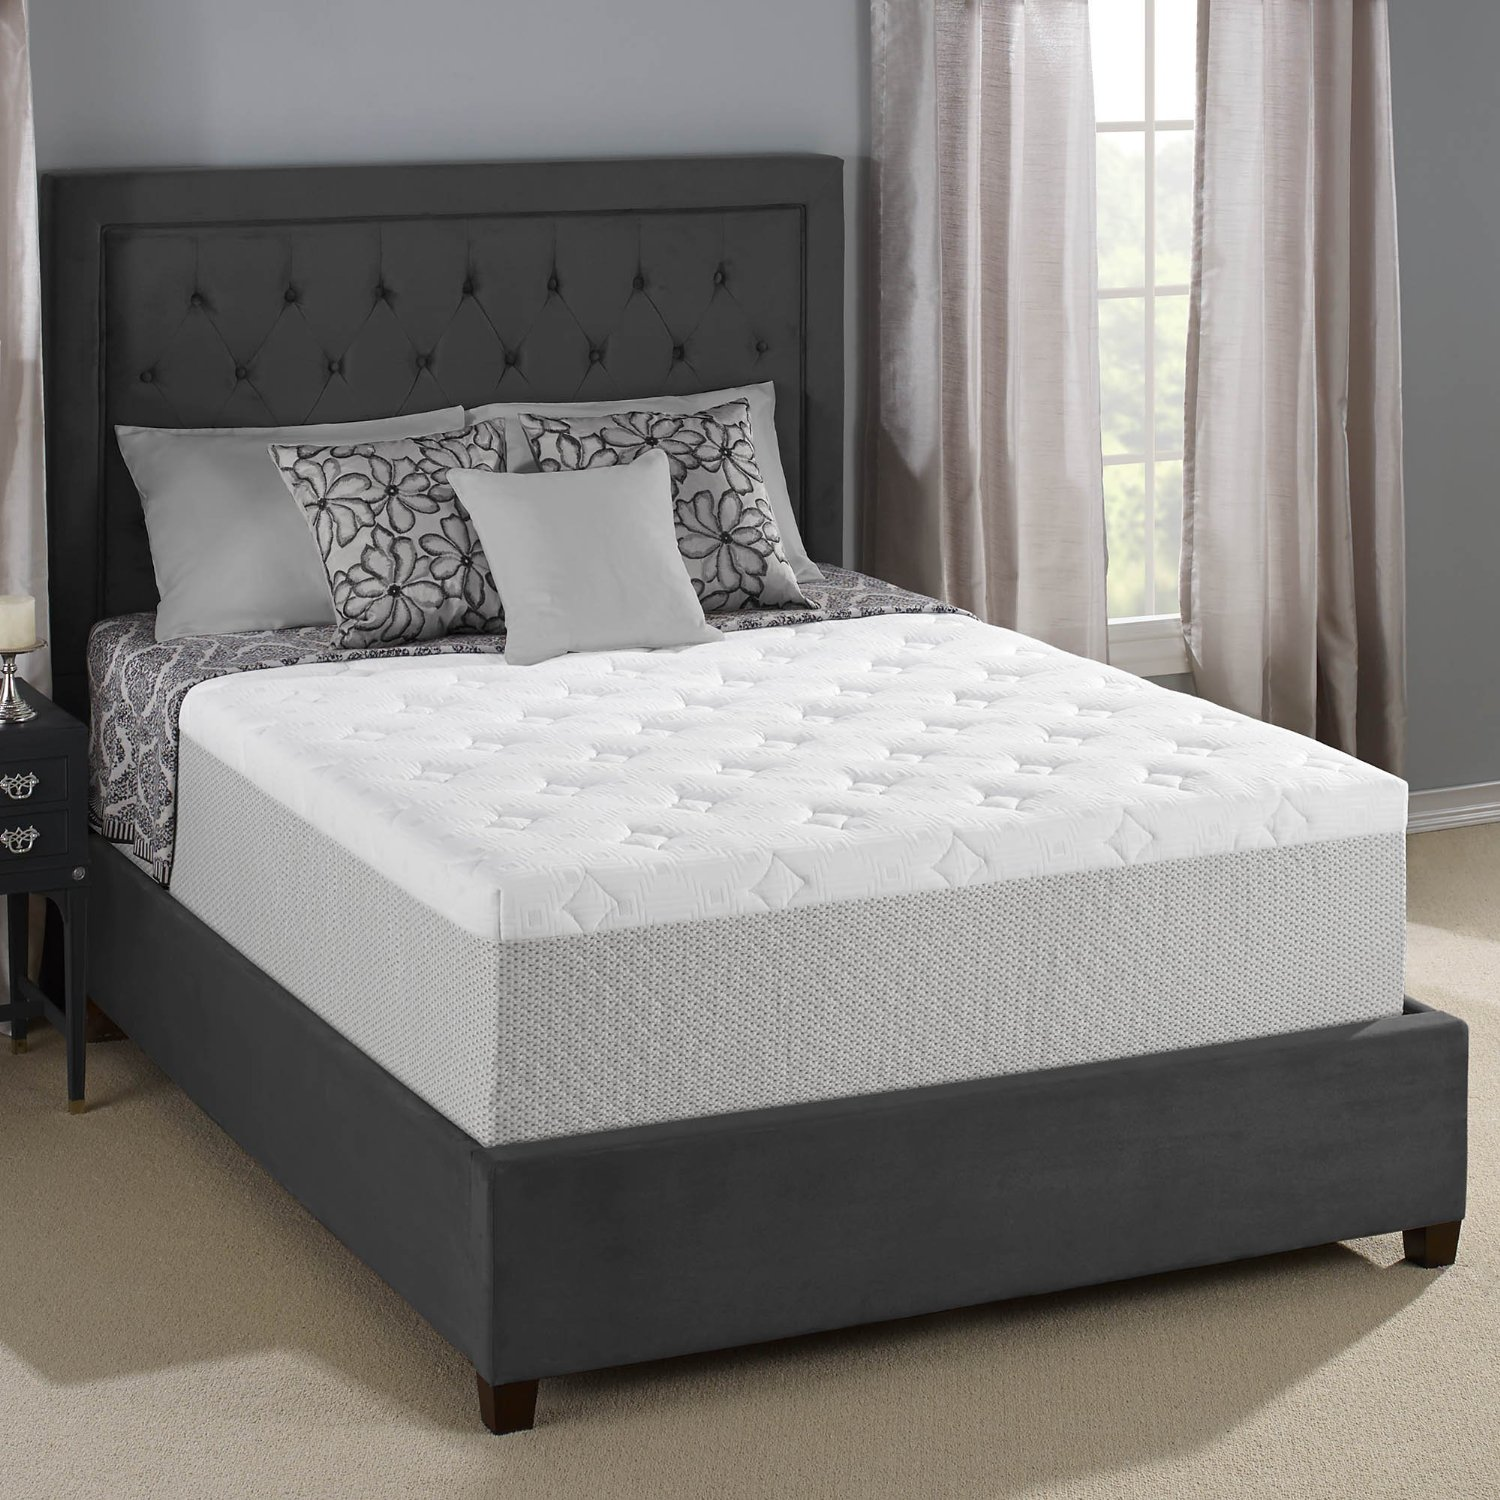 Top Short Queen Mattress